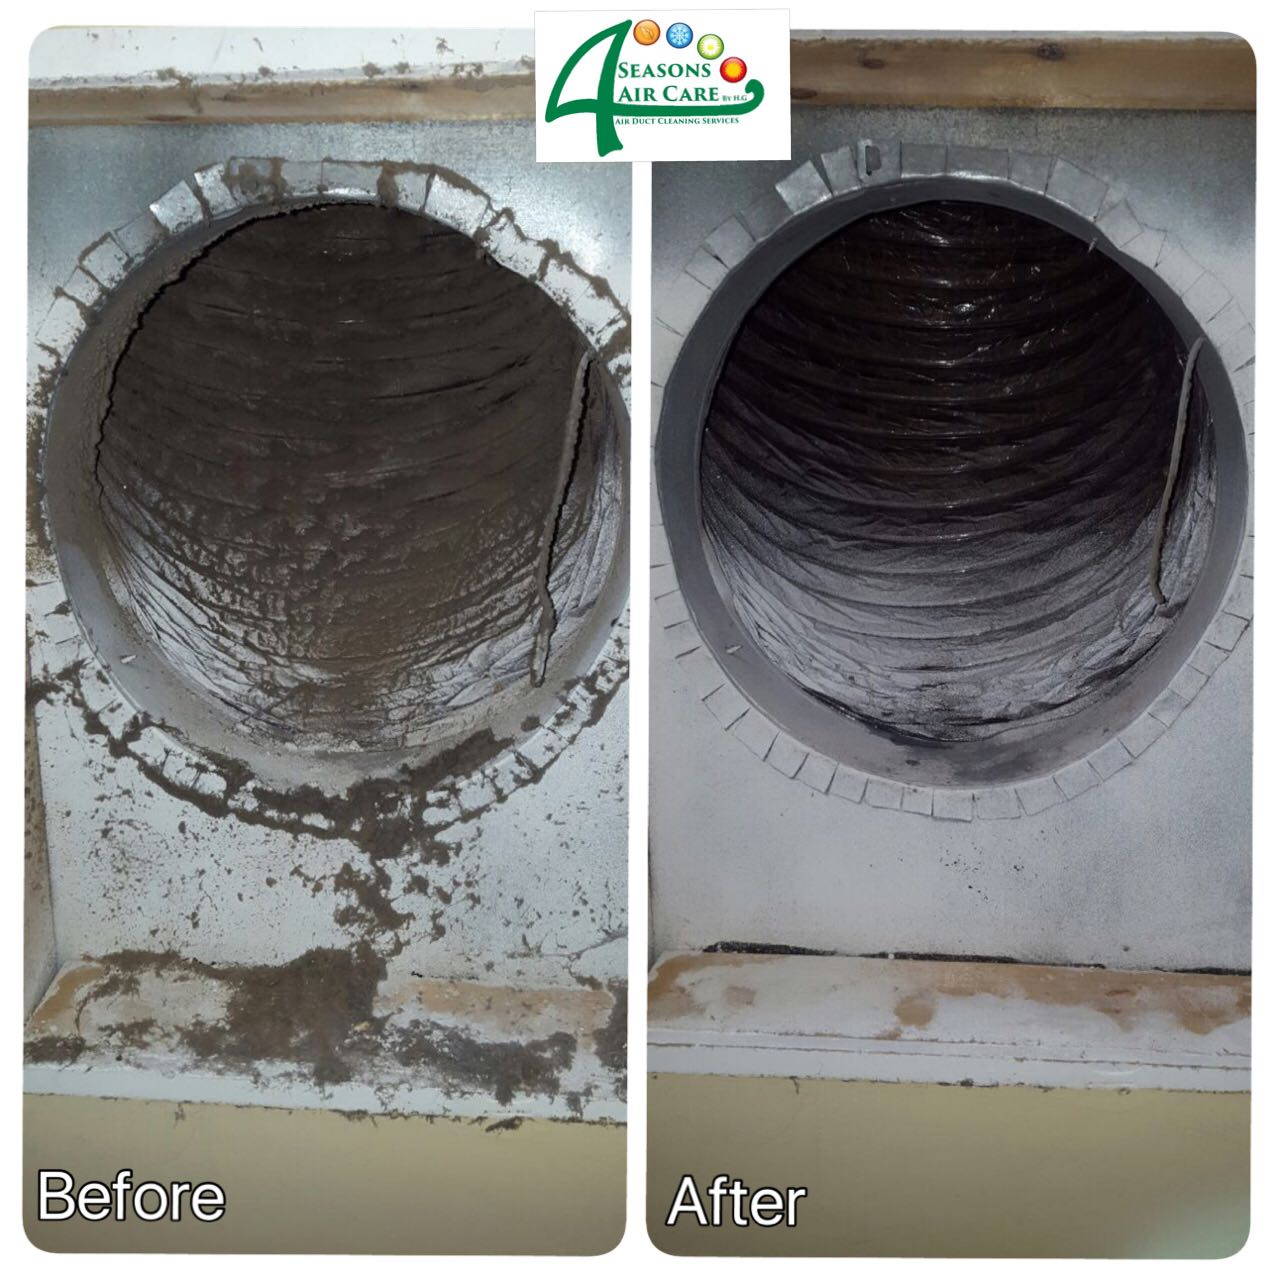 Why We Need Air Duct Cleaning Services?